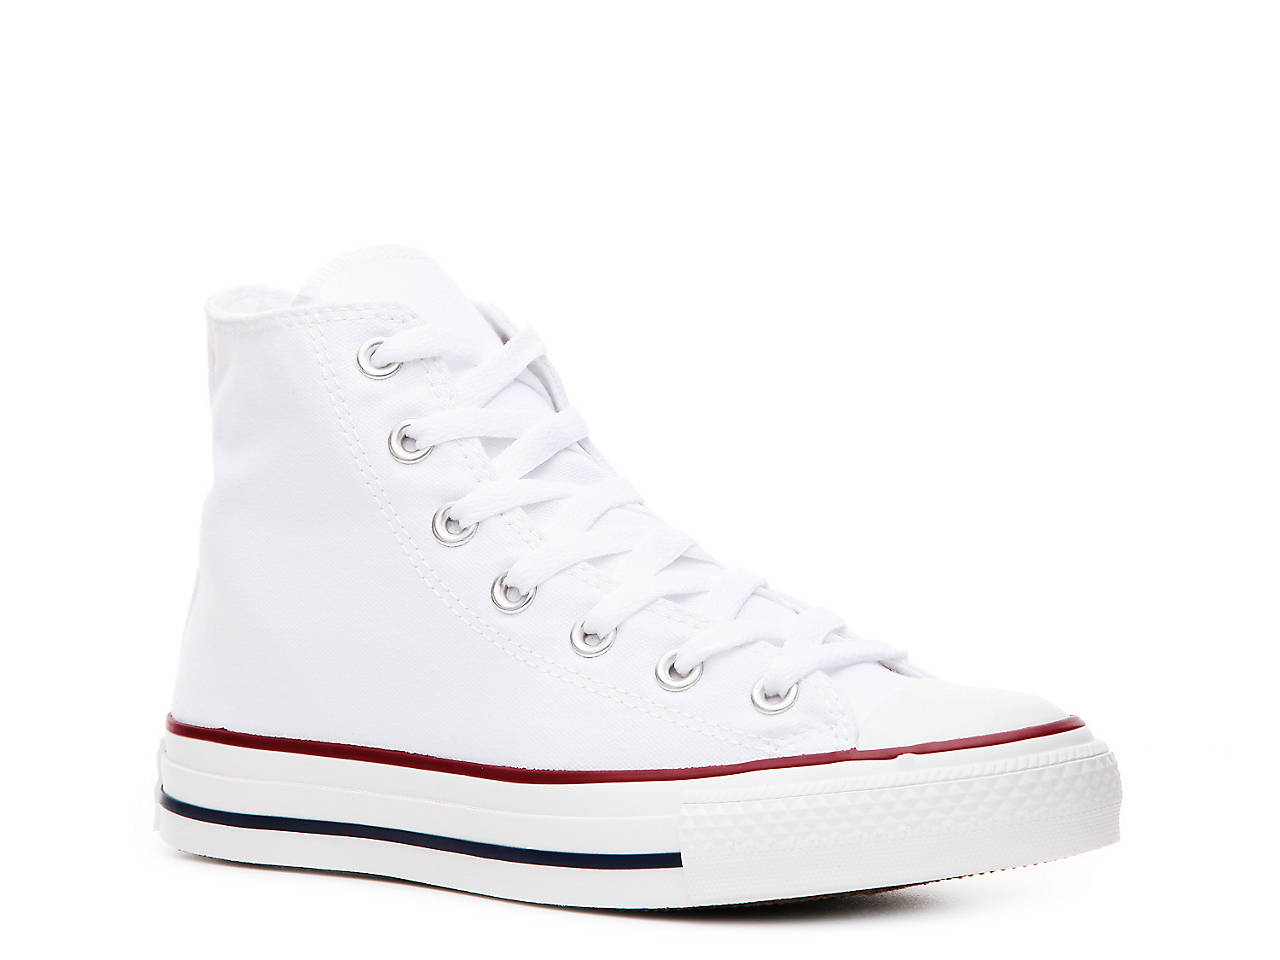 2b840cb50c316 Converse Chuck Taylor All Star High-Top Sneaker - Women s Women s ...